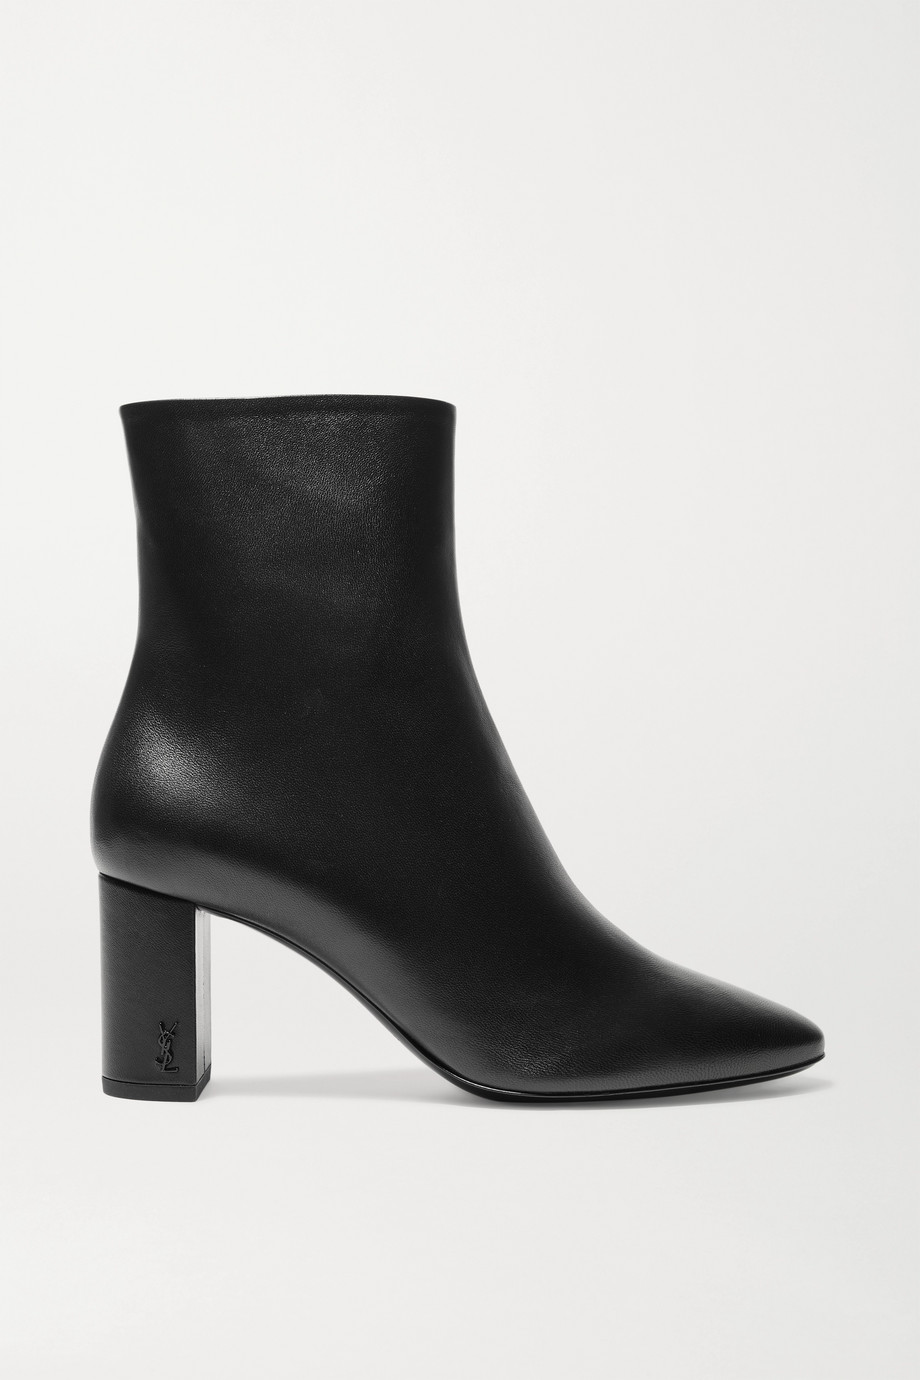 SAINT LAURENT Lou leather ankle boots